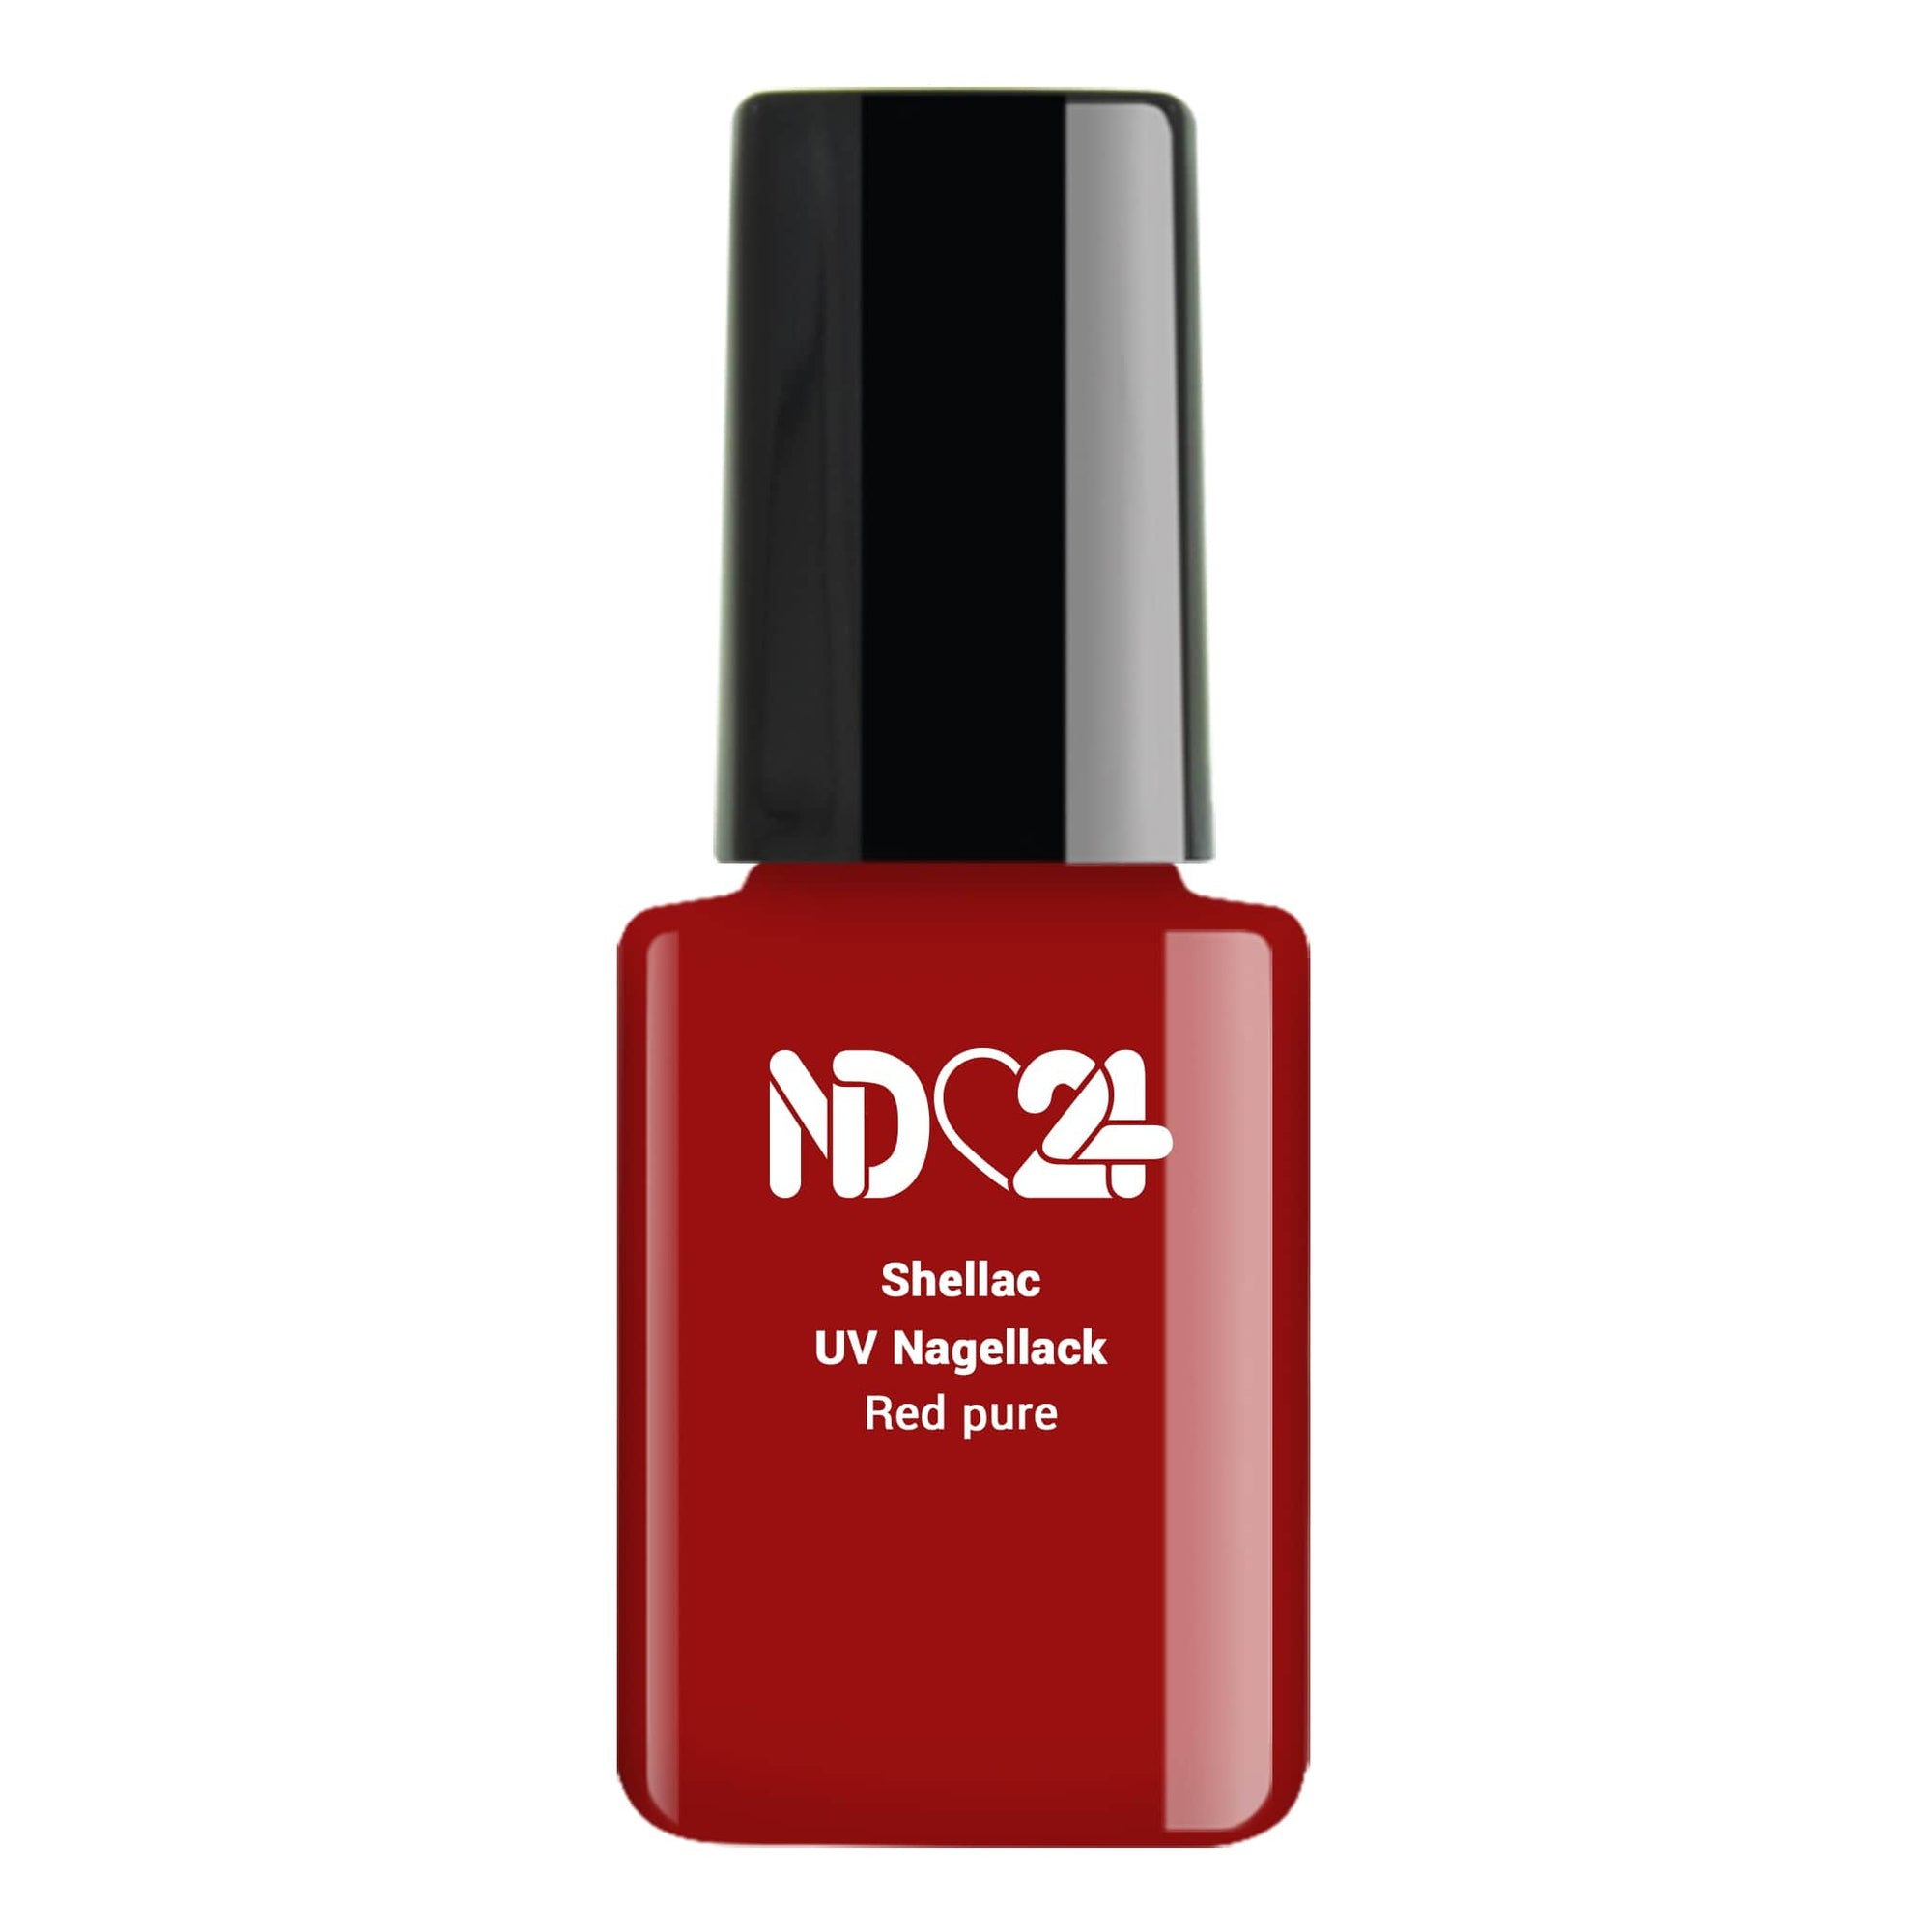 Shellac Red pure